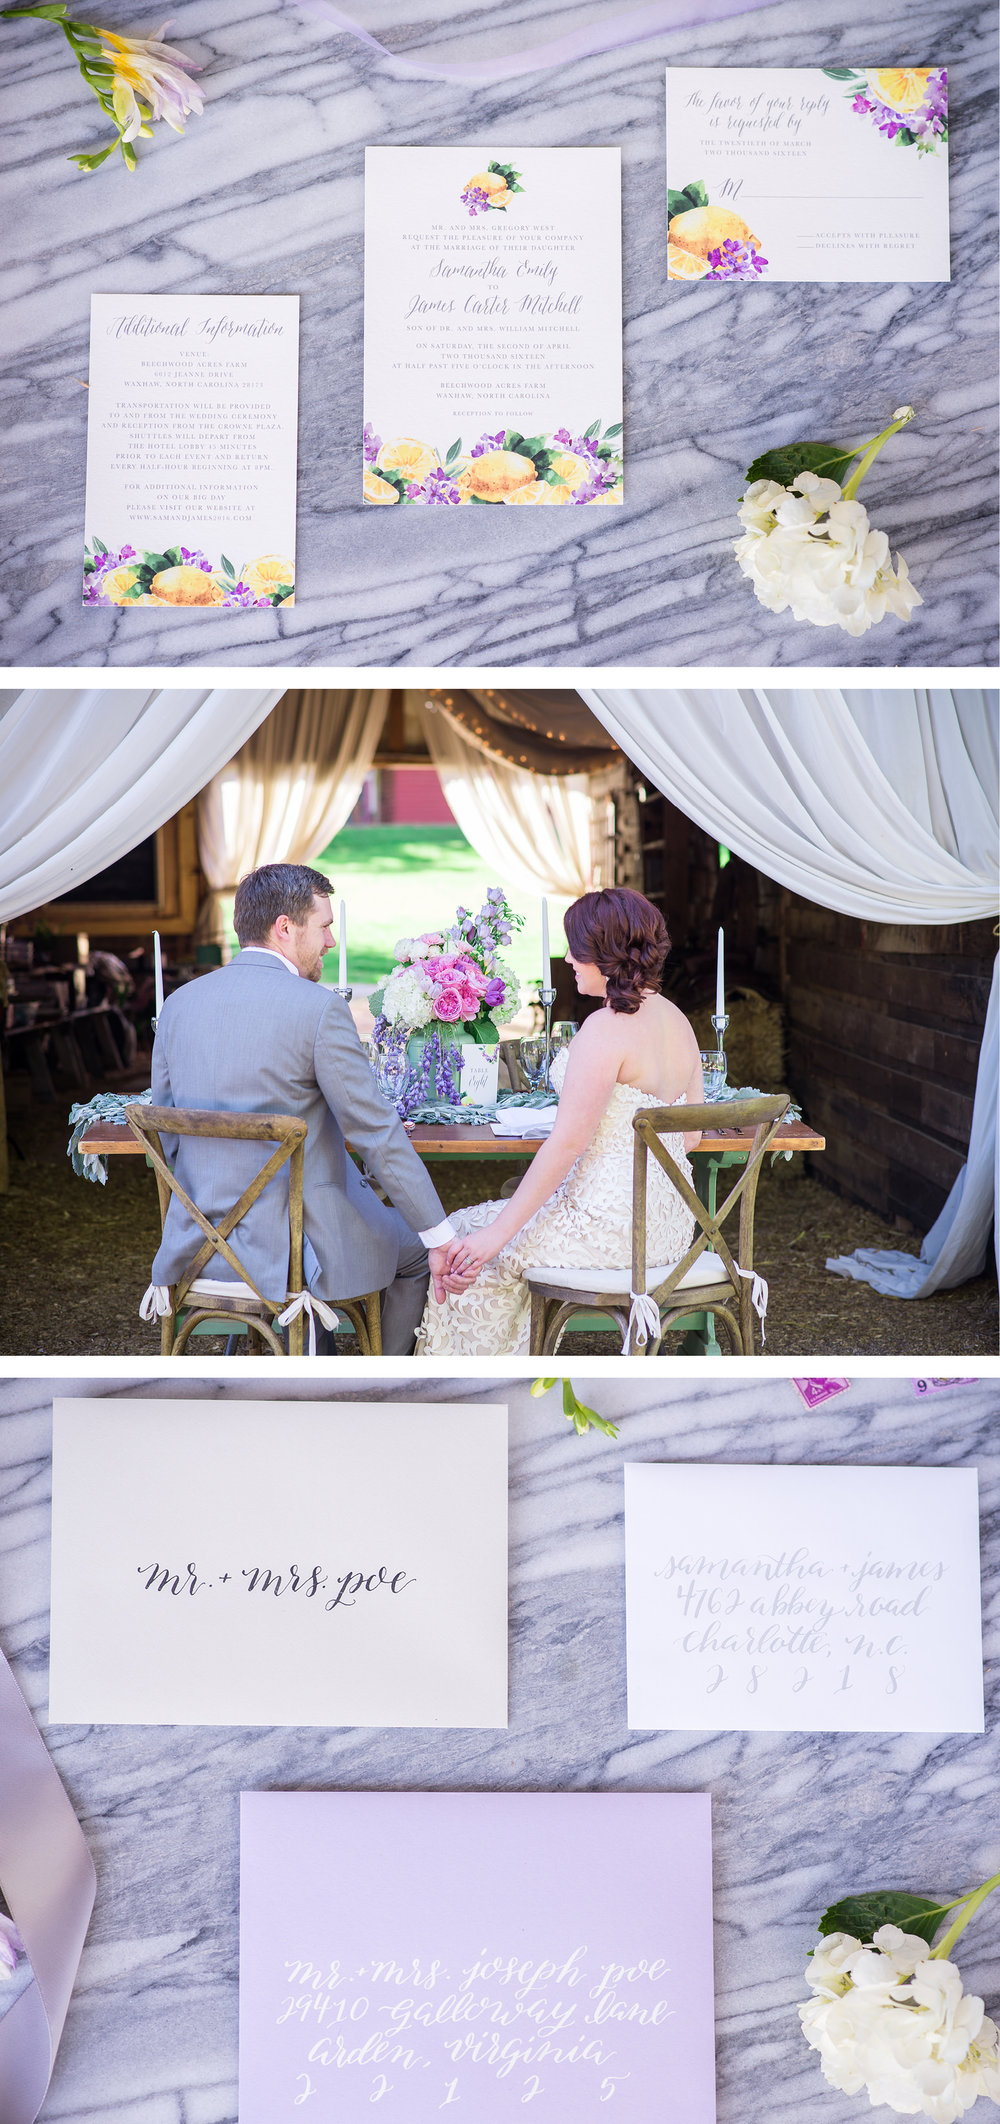 Charlotte-Wedding-Stationer-Lemon-and-Lavender-Styled-Shoot-Magnificent-Moments-Cami-Ann6.jpg